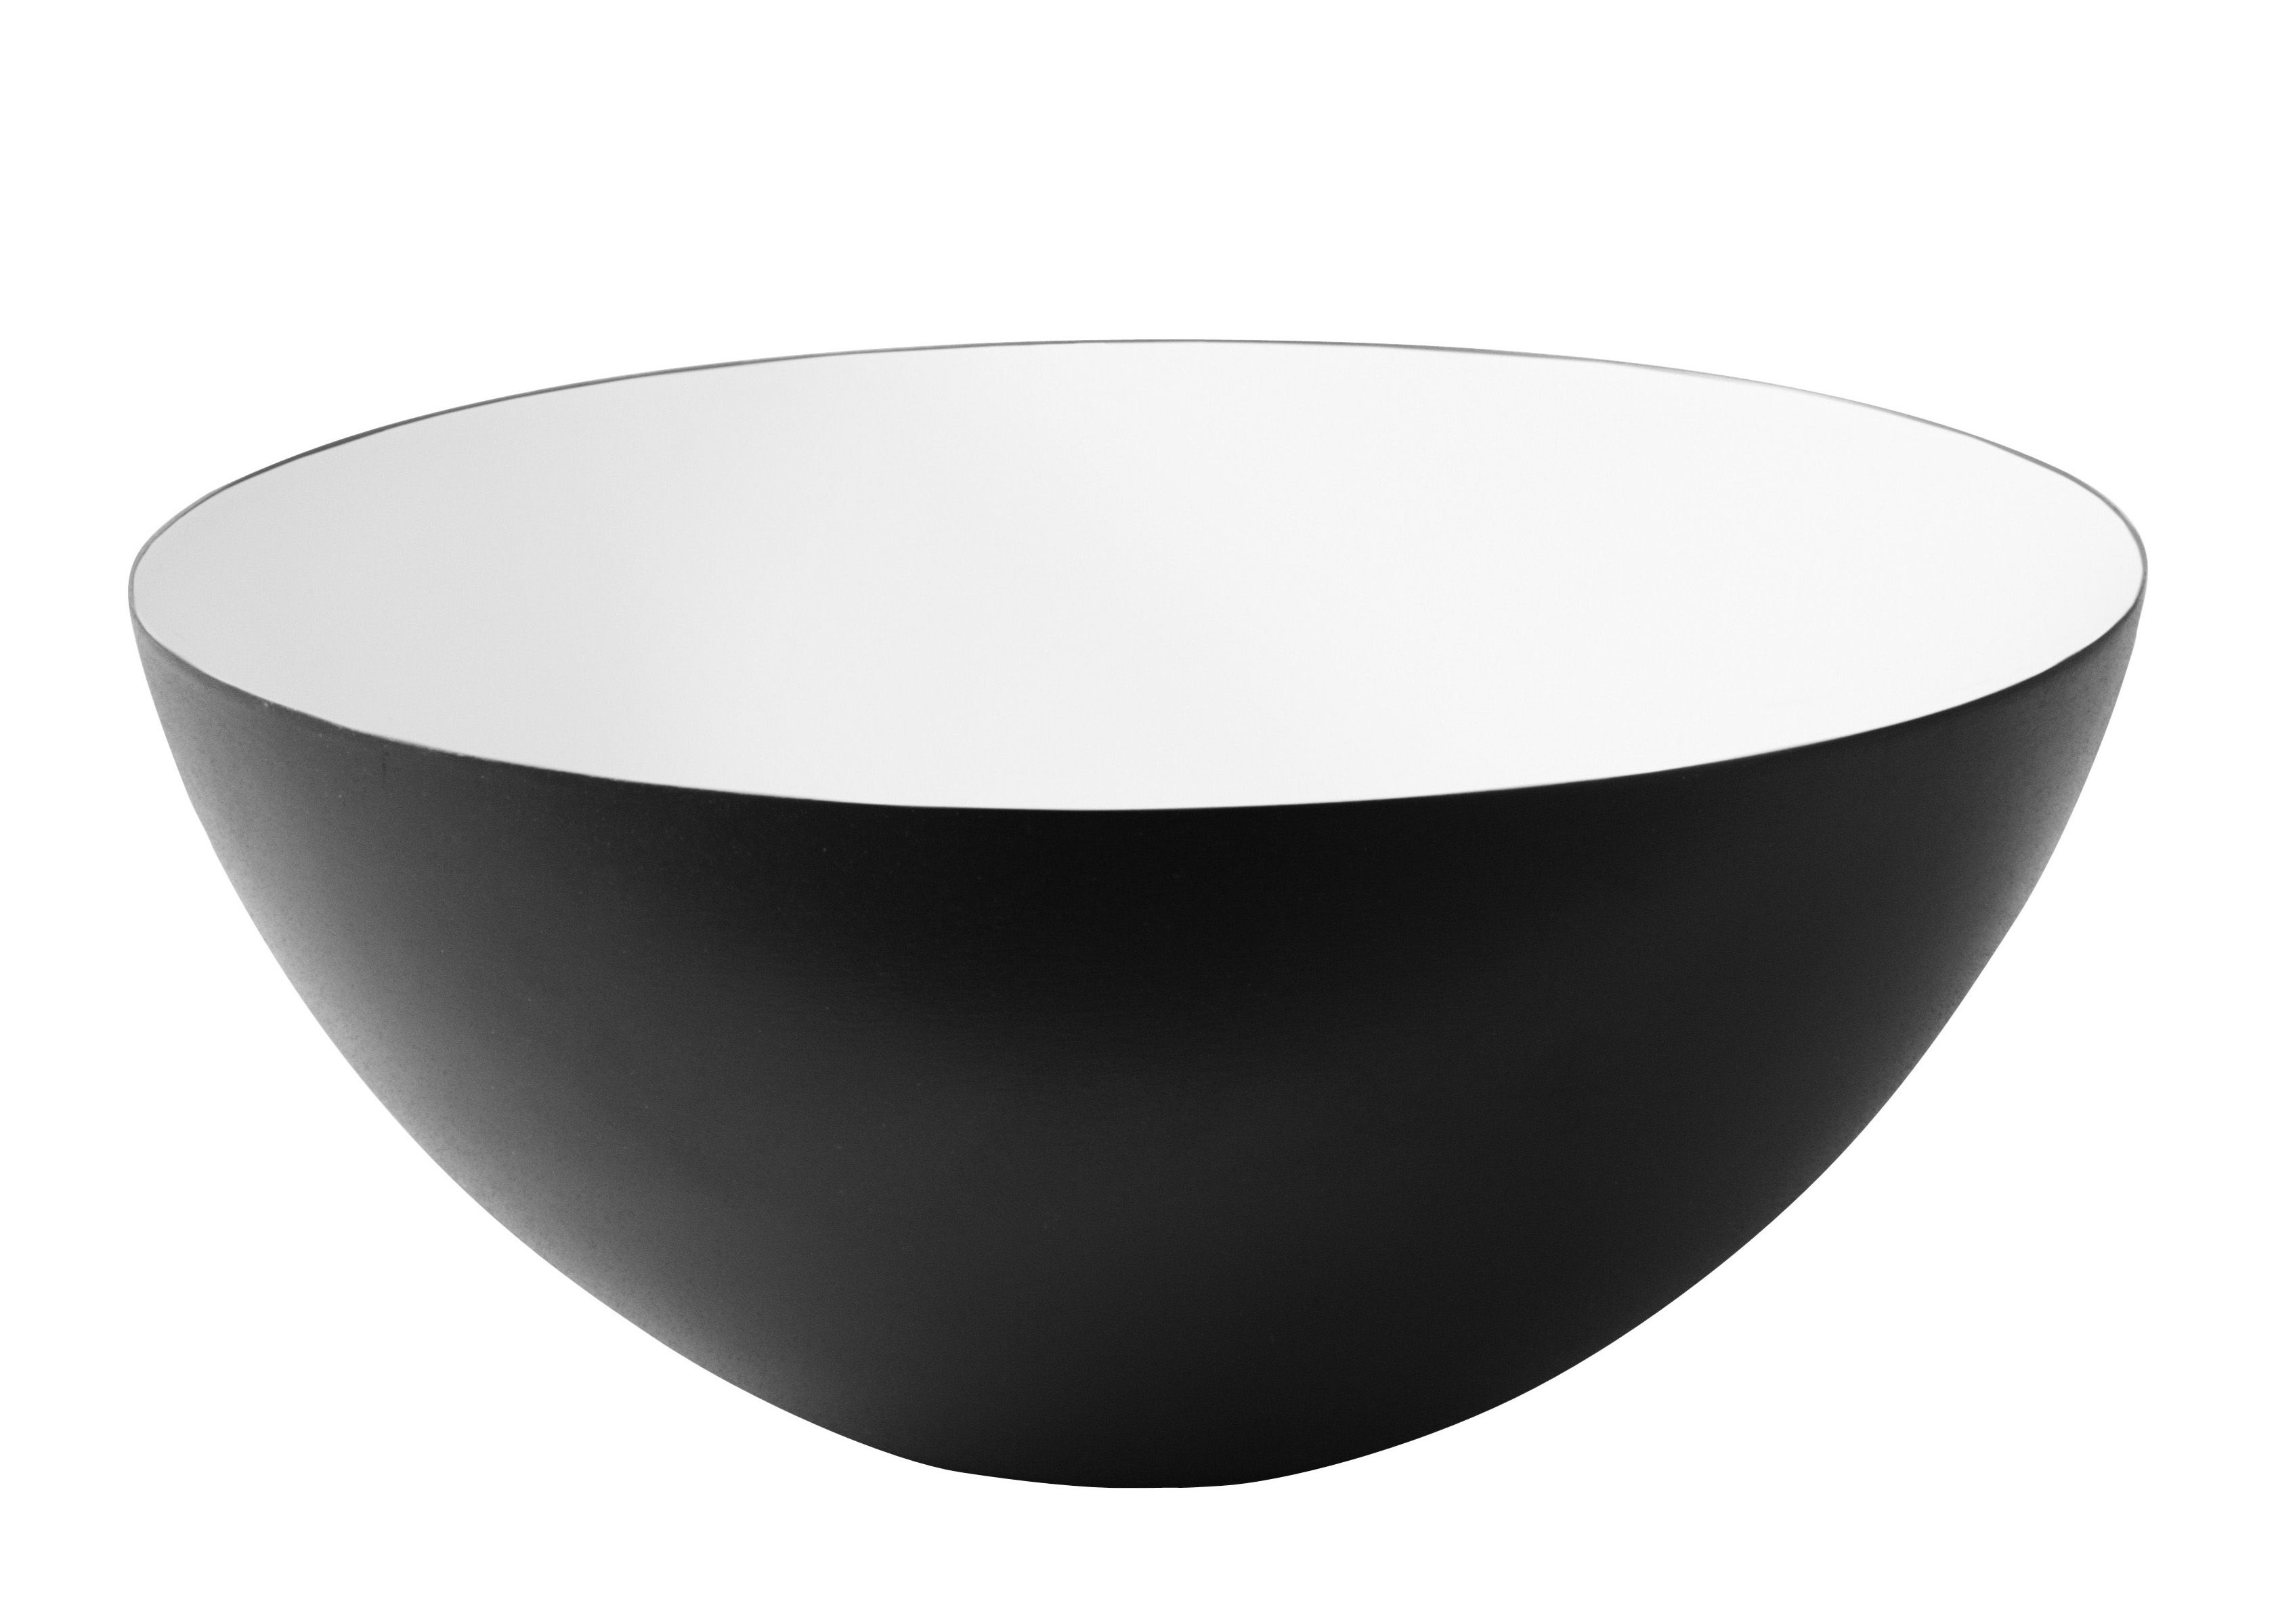 Tableware - Bowls - Krenit Small dish - Bowl Ø 8,4 cm by Normann Copenhagen - Black / White - Enamelled steel